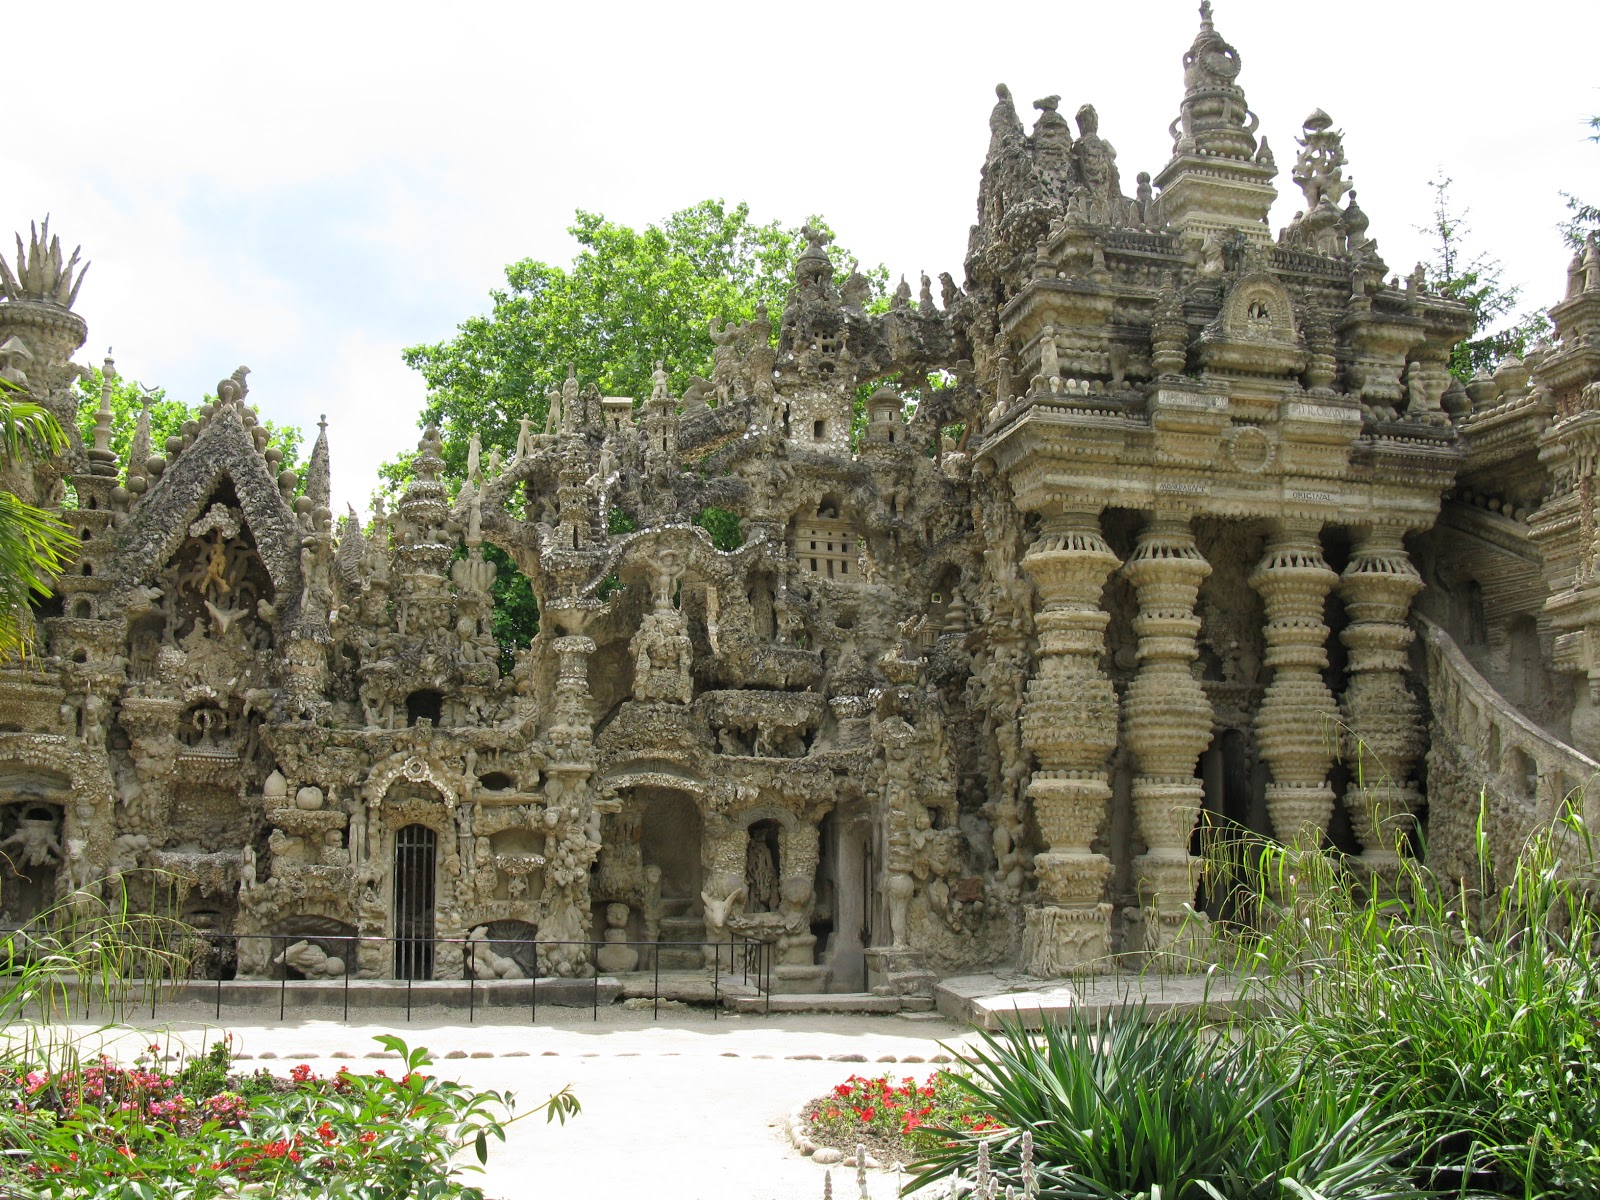 ideal palace Ferdinand cheval left school at age 13 to become a baker's apprentice, but ended up delivering mail in the hauterives area the idea for the elaborate cathedral came when he tripped over an unusually shaped rock in his 30s.